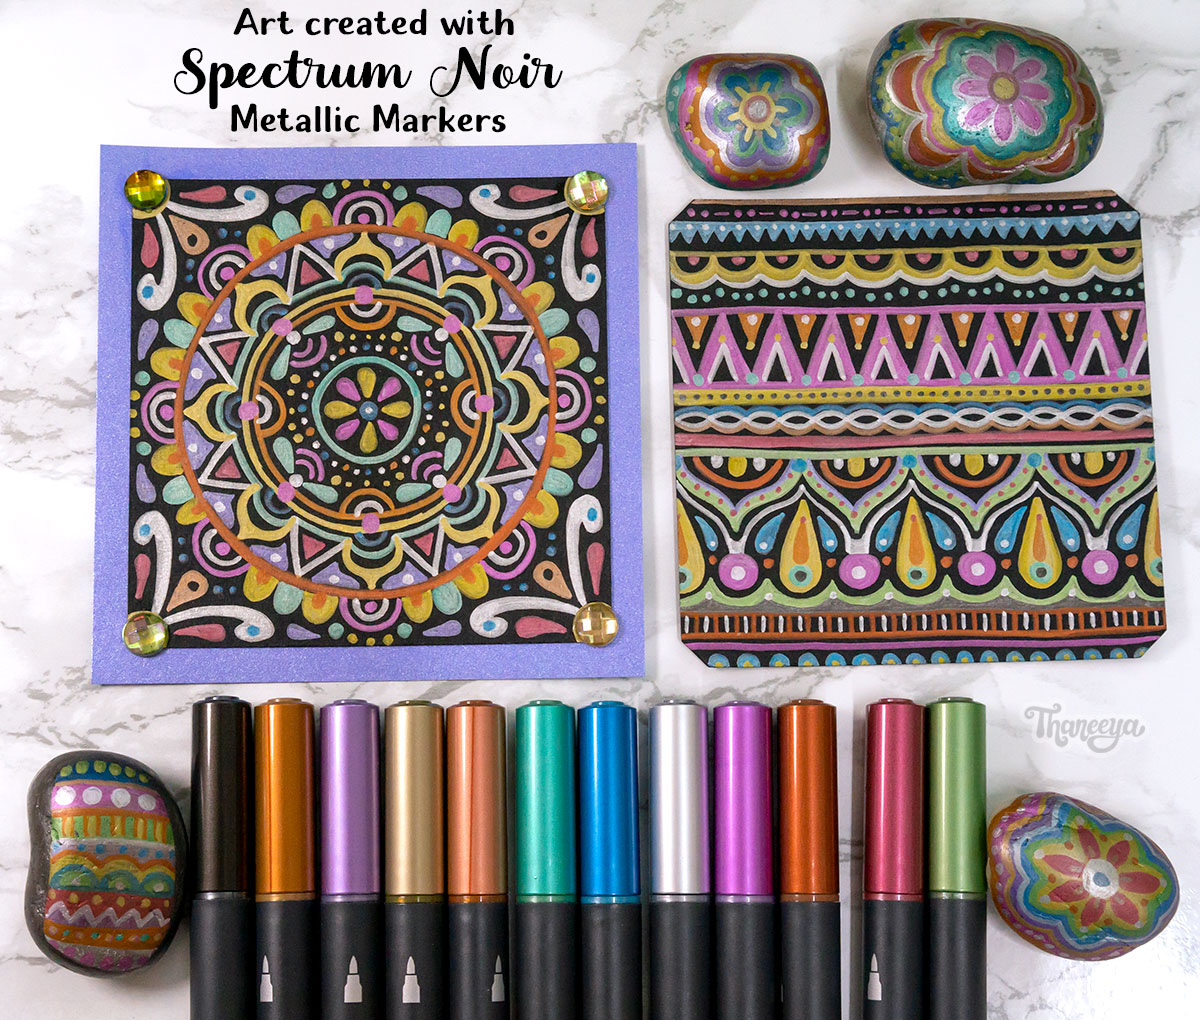 Spectrum Noir Artliners Review - Art on Black Paper and Rocks by Thaneeya McArdle